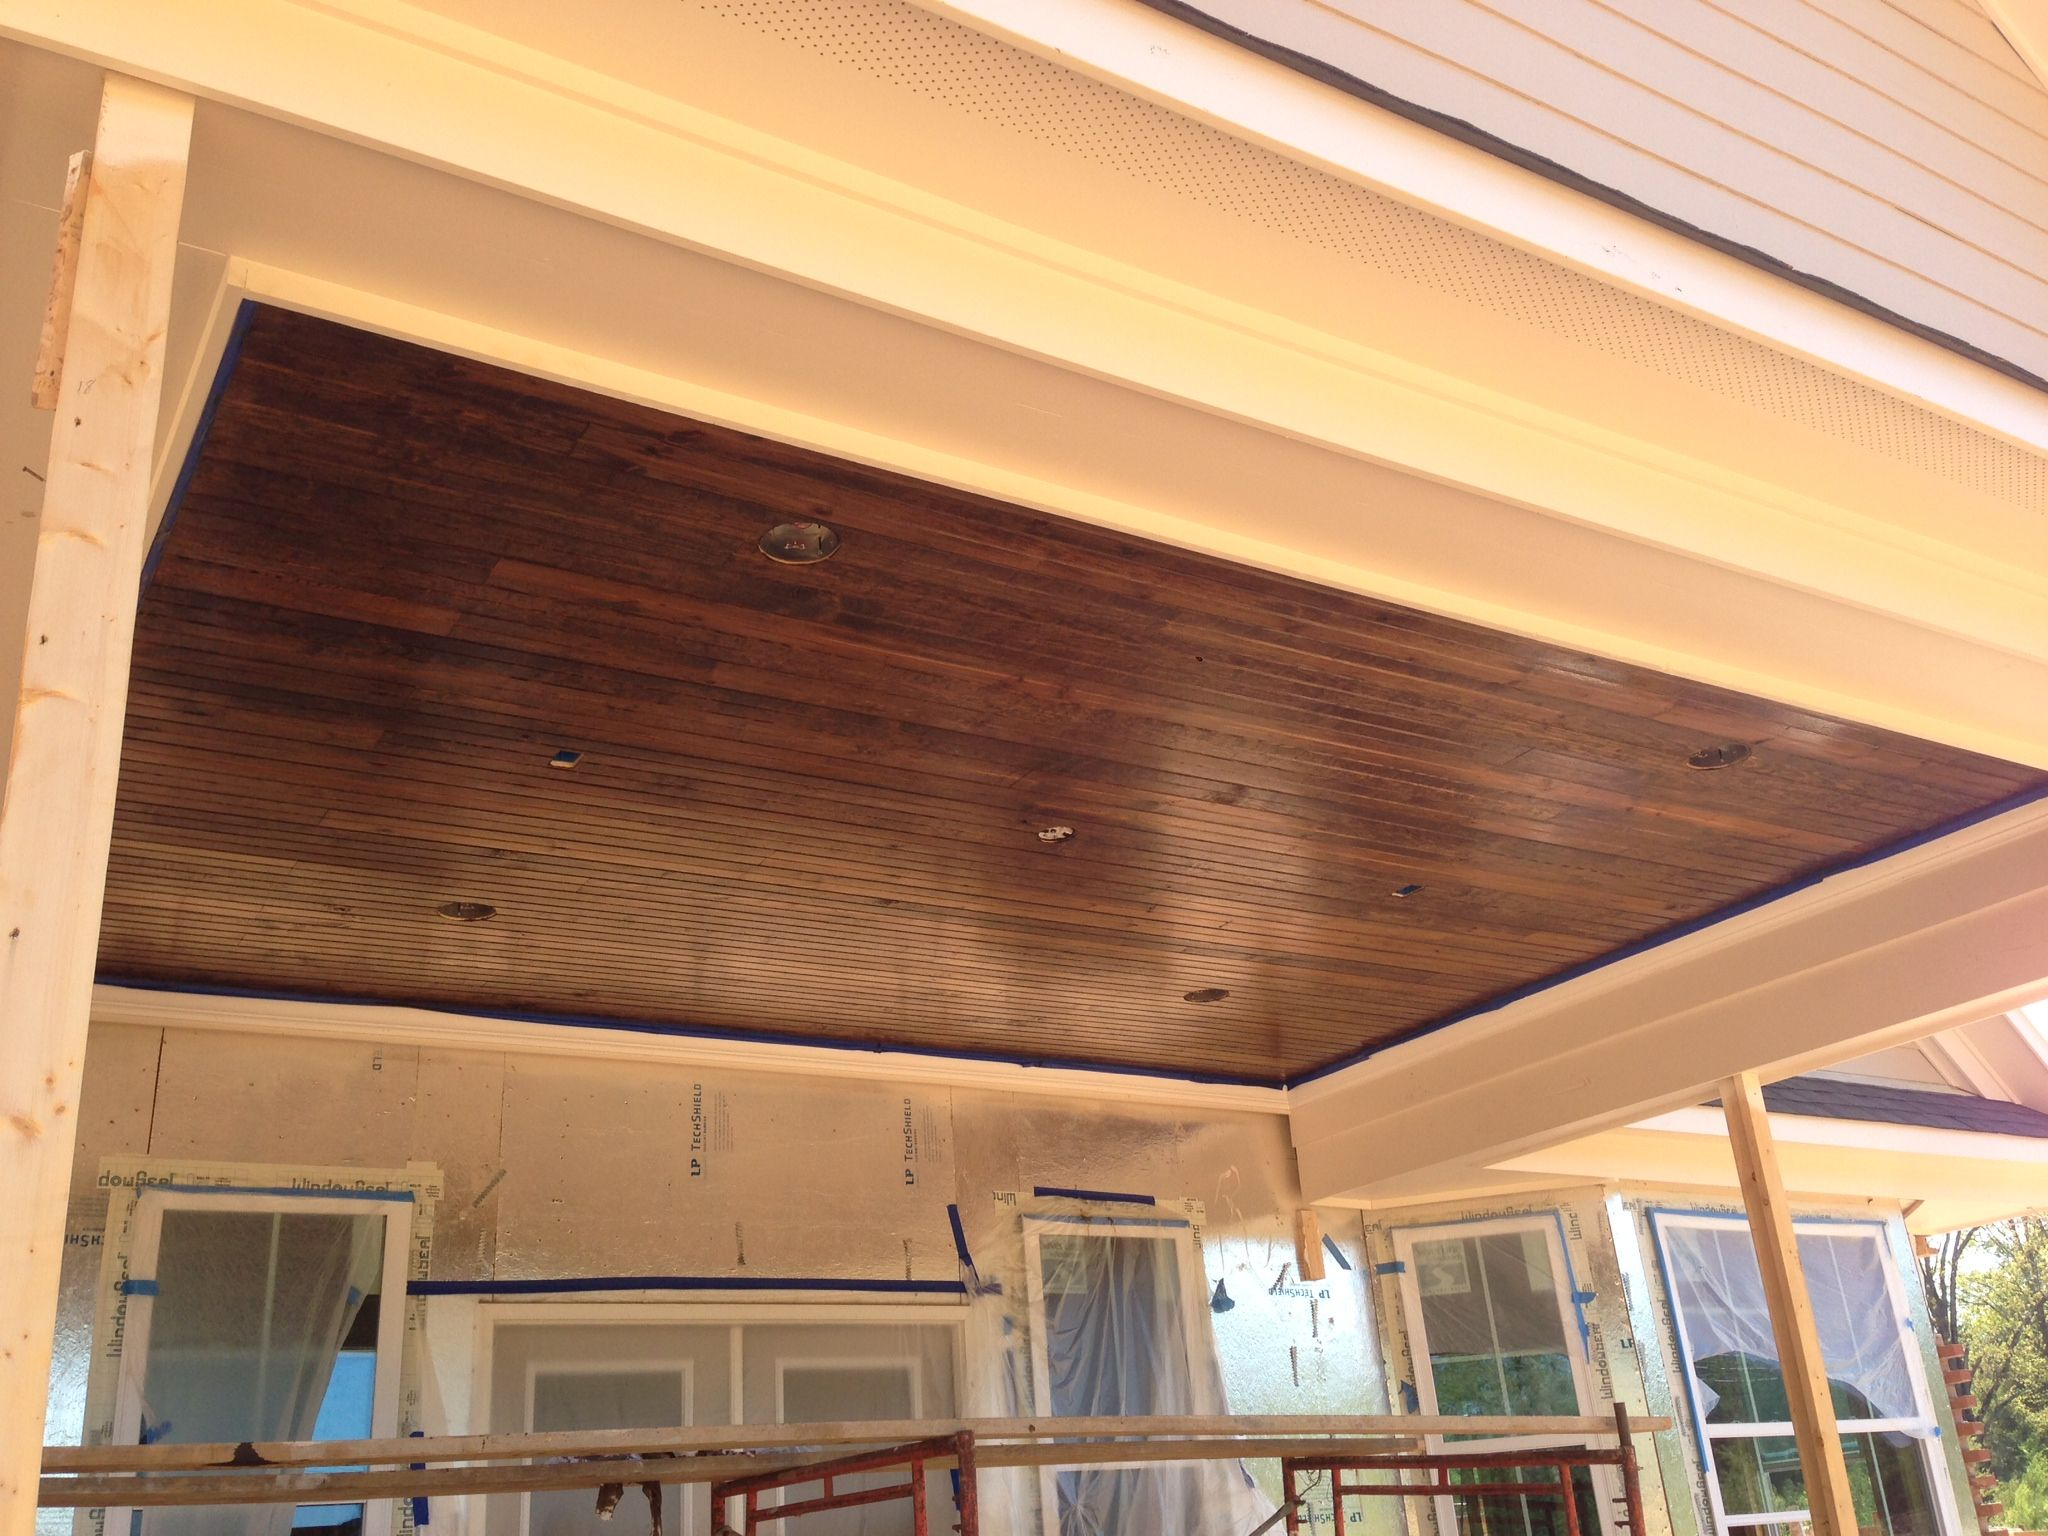 Our Patio Ceiling Tongue Groove Wood With A Dark Stain Love It Wood Patio Porch Wood Outdoor Wood